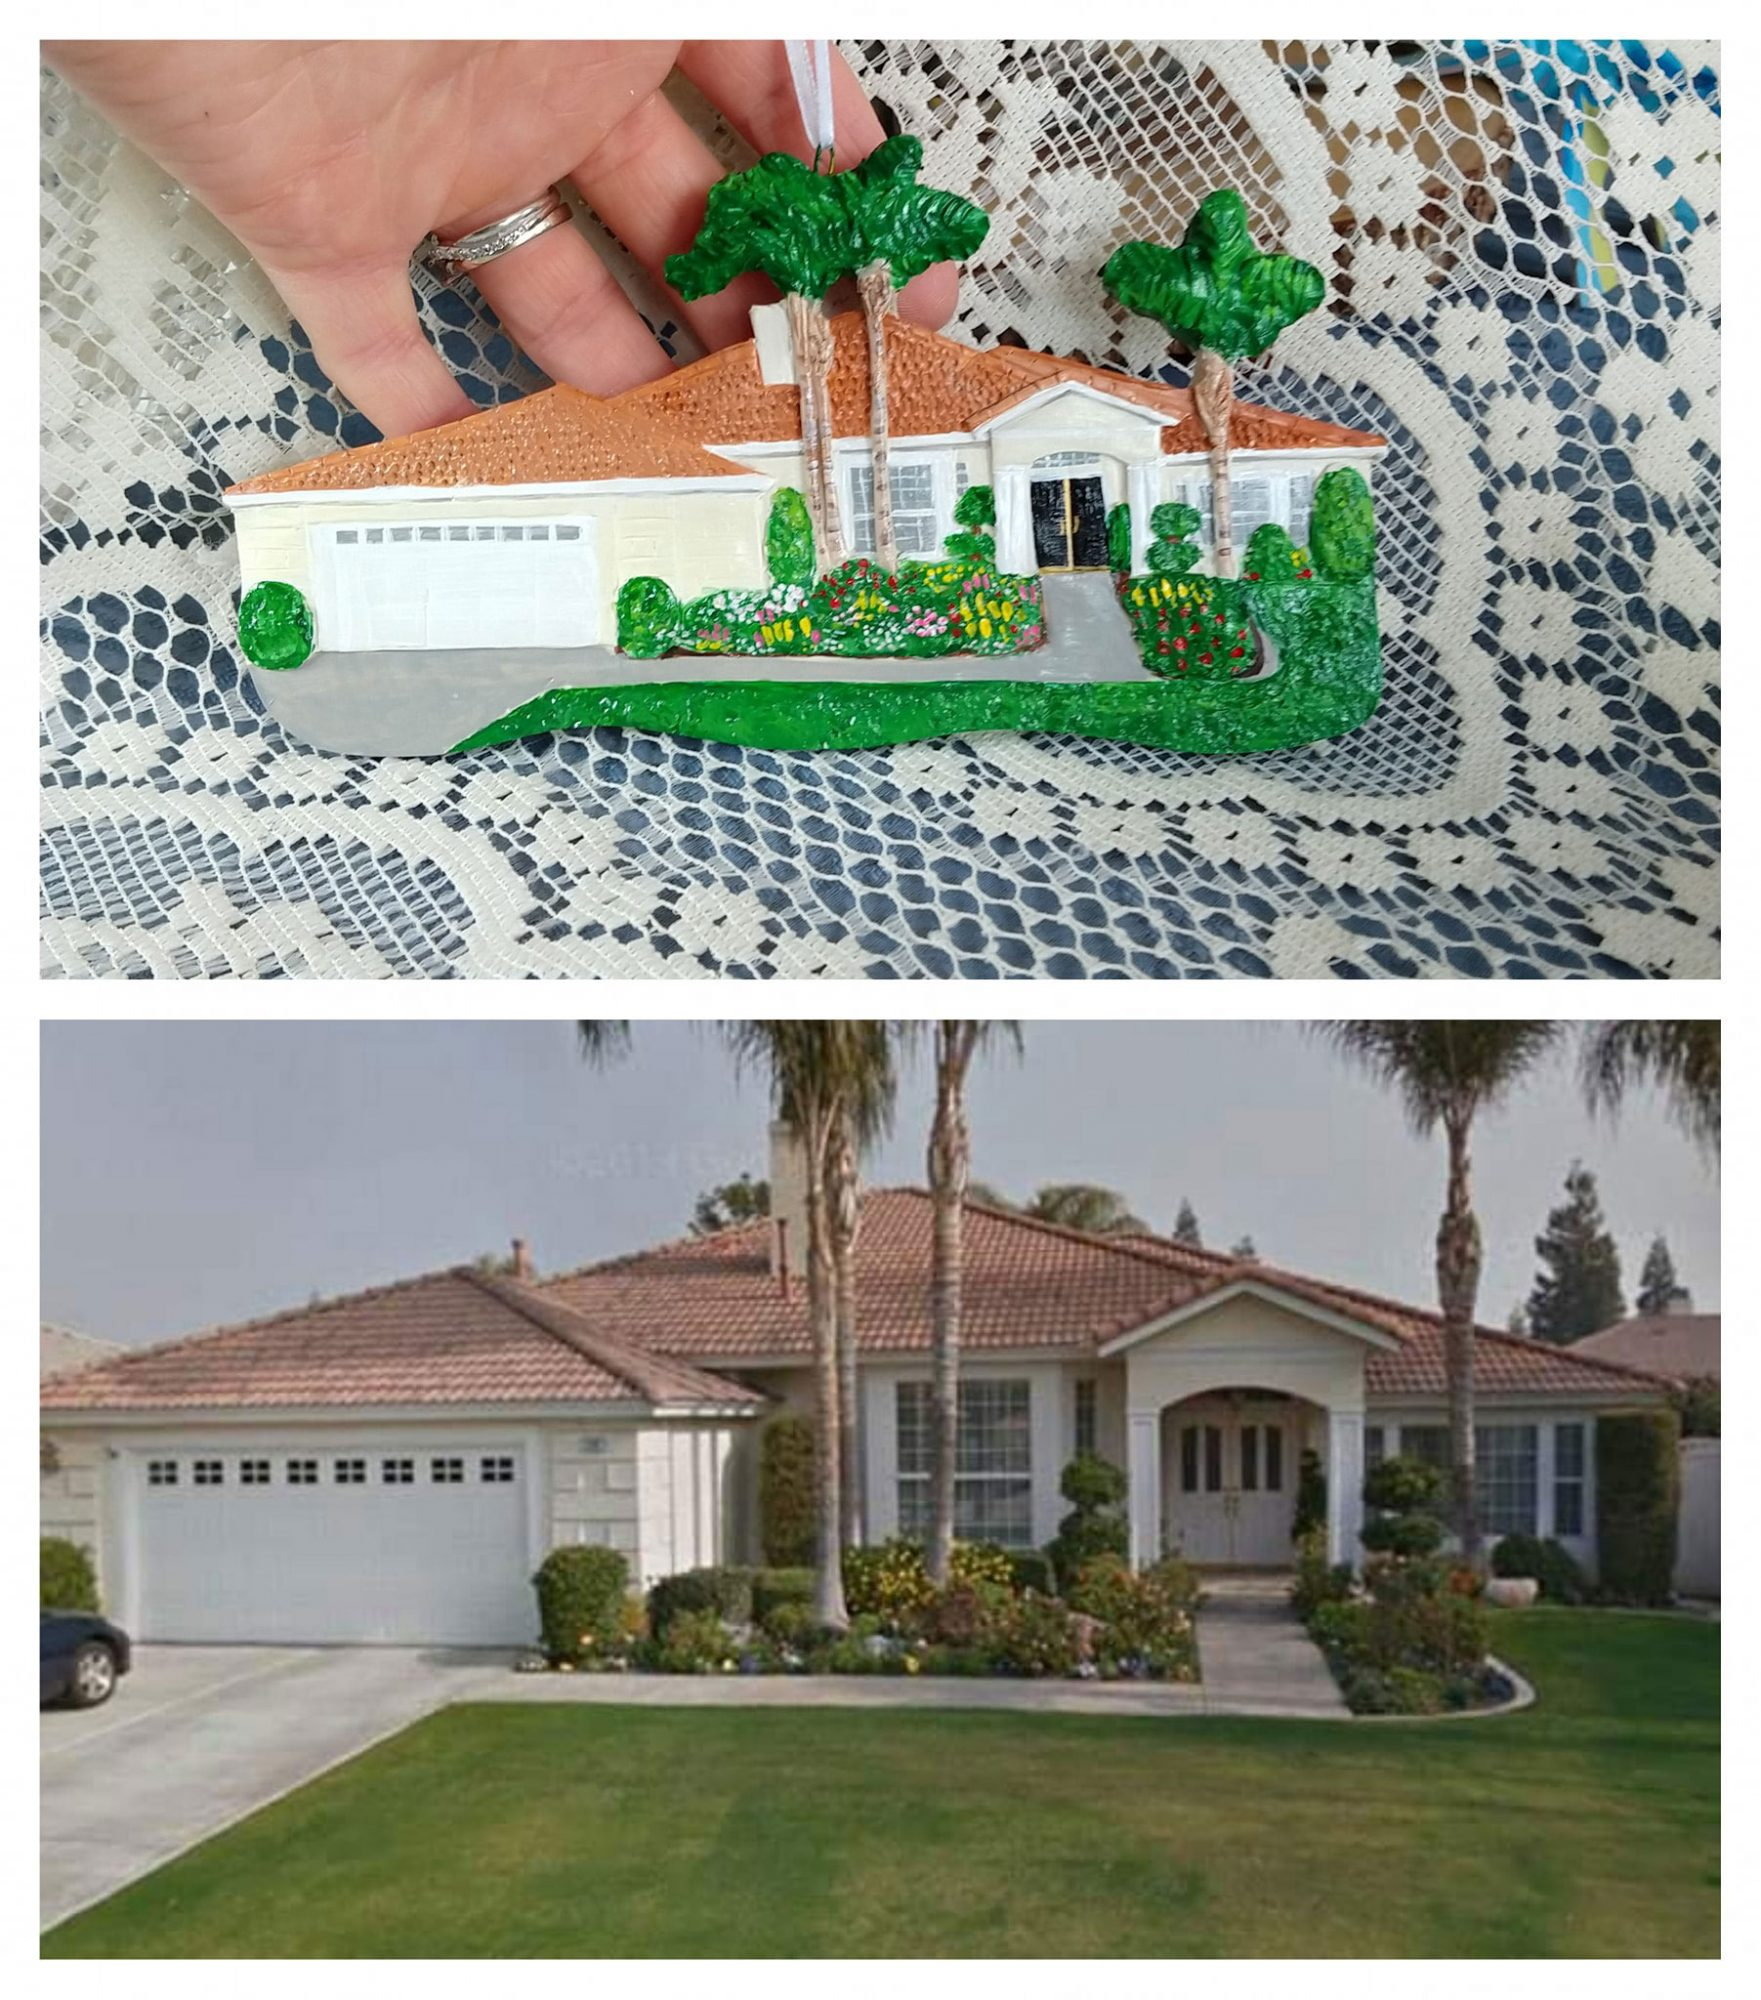 Etsy Shop Sells Christmas Ornaments that Are Mini Replicas of Homes